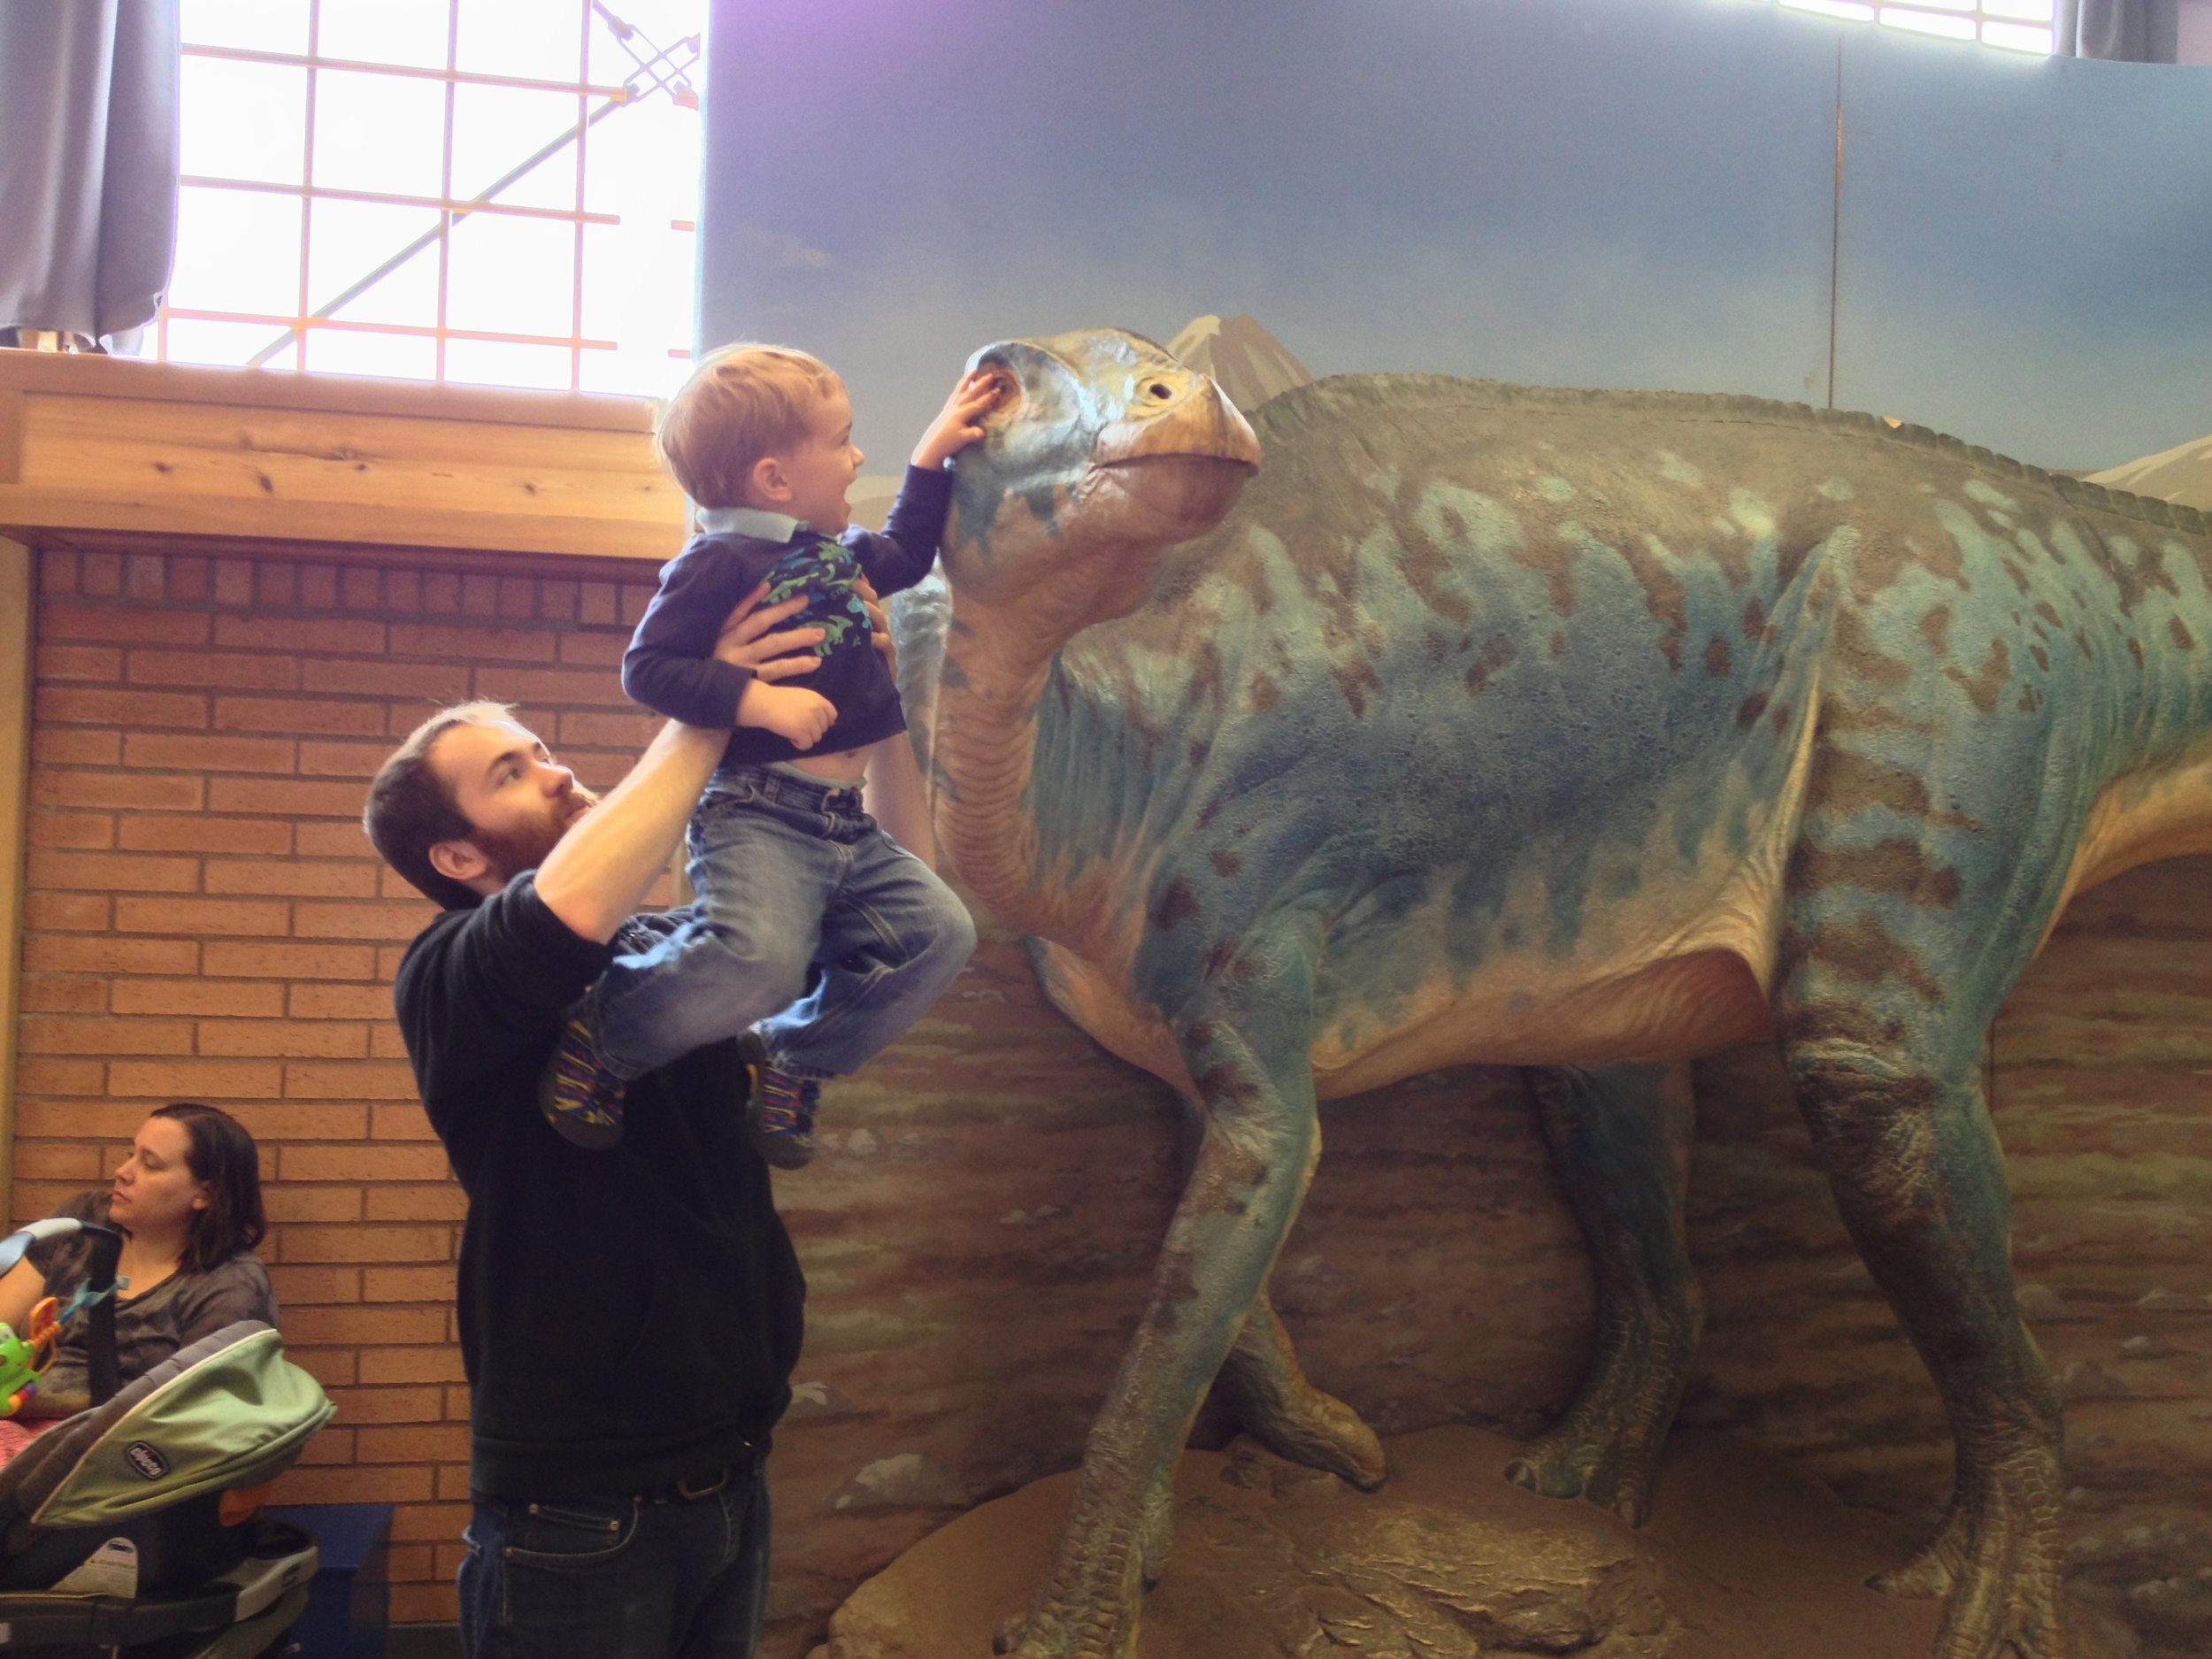 from a trip to visit my brother in Portland back in 2013...the Children's museum had a fabulous dino exhibit!